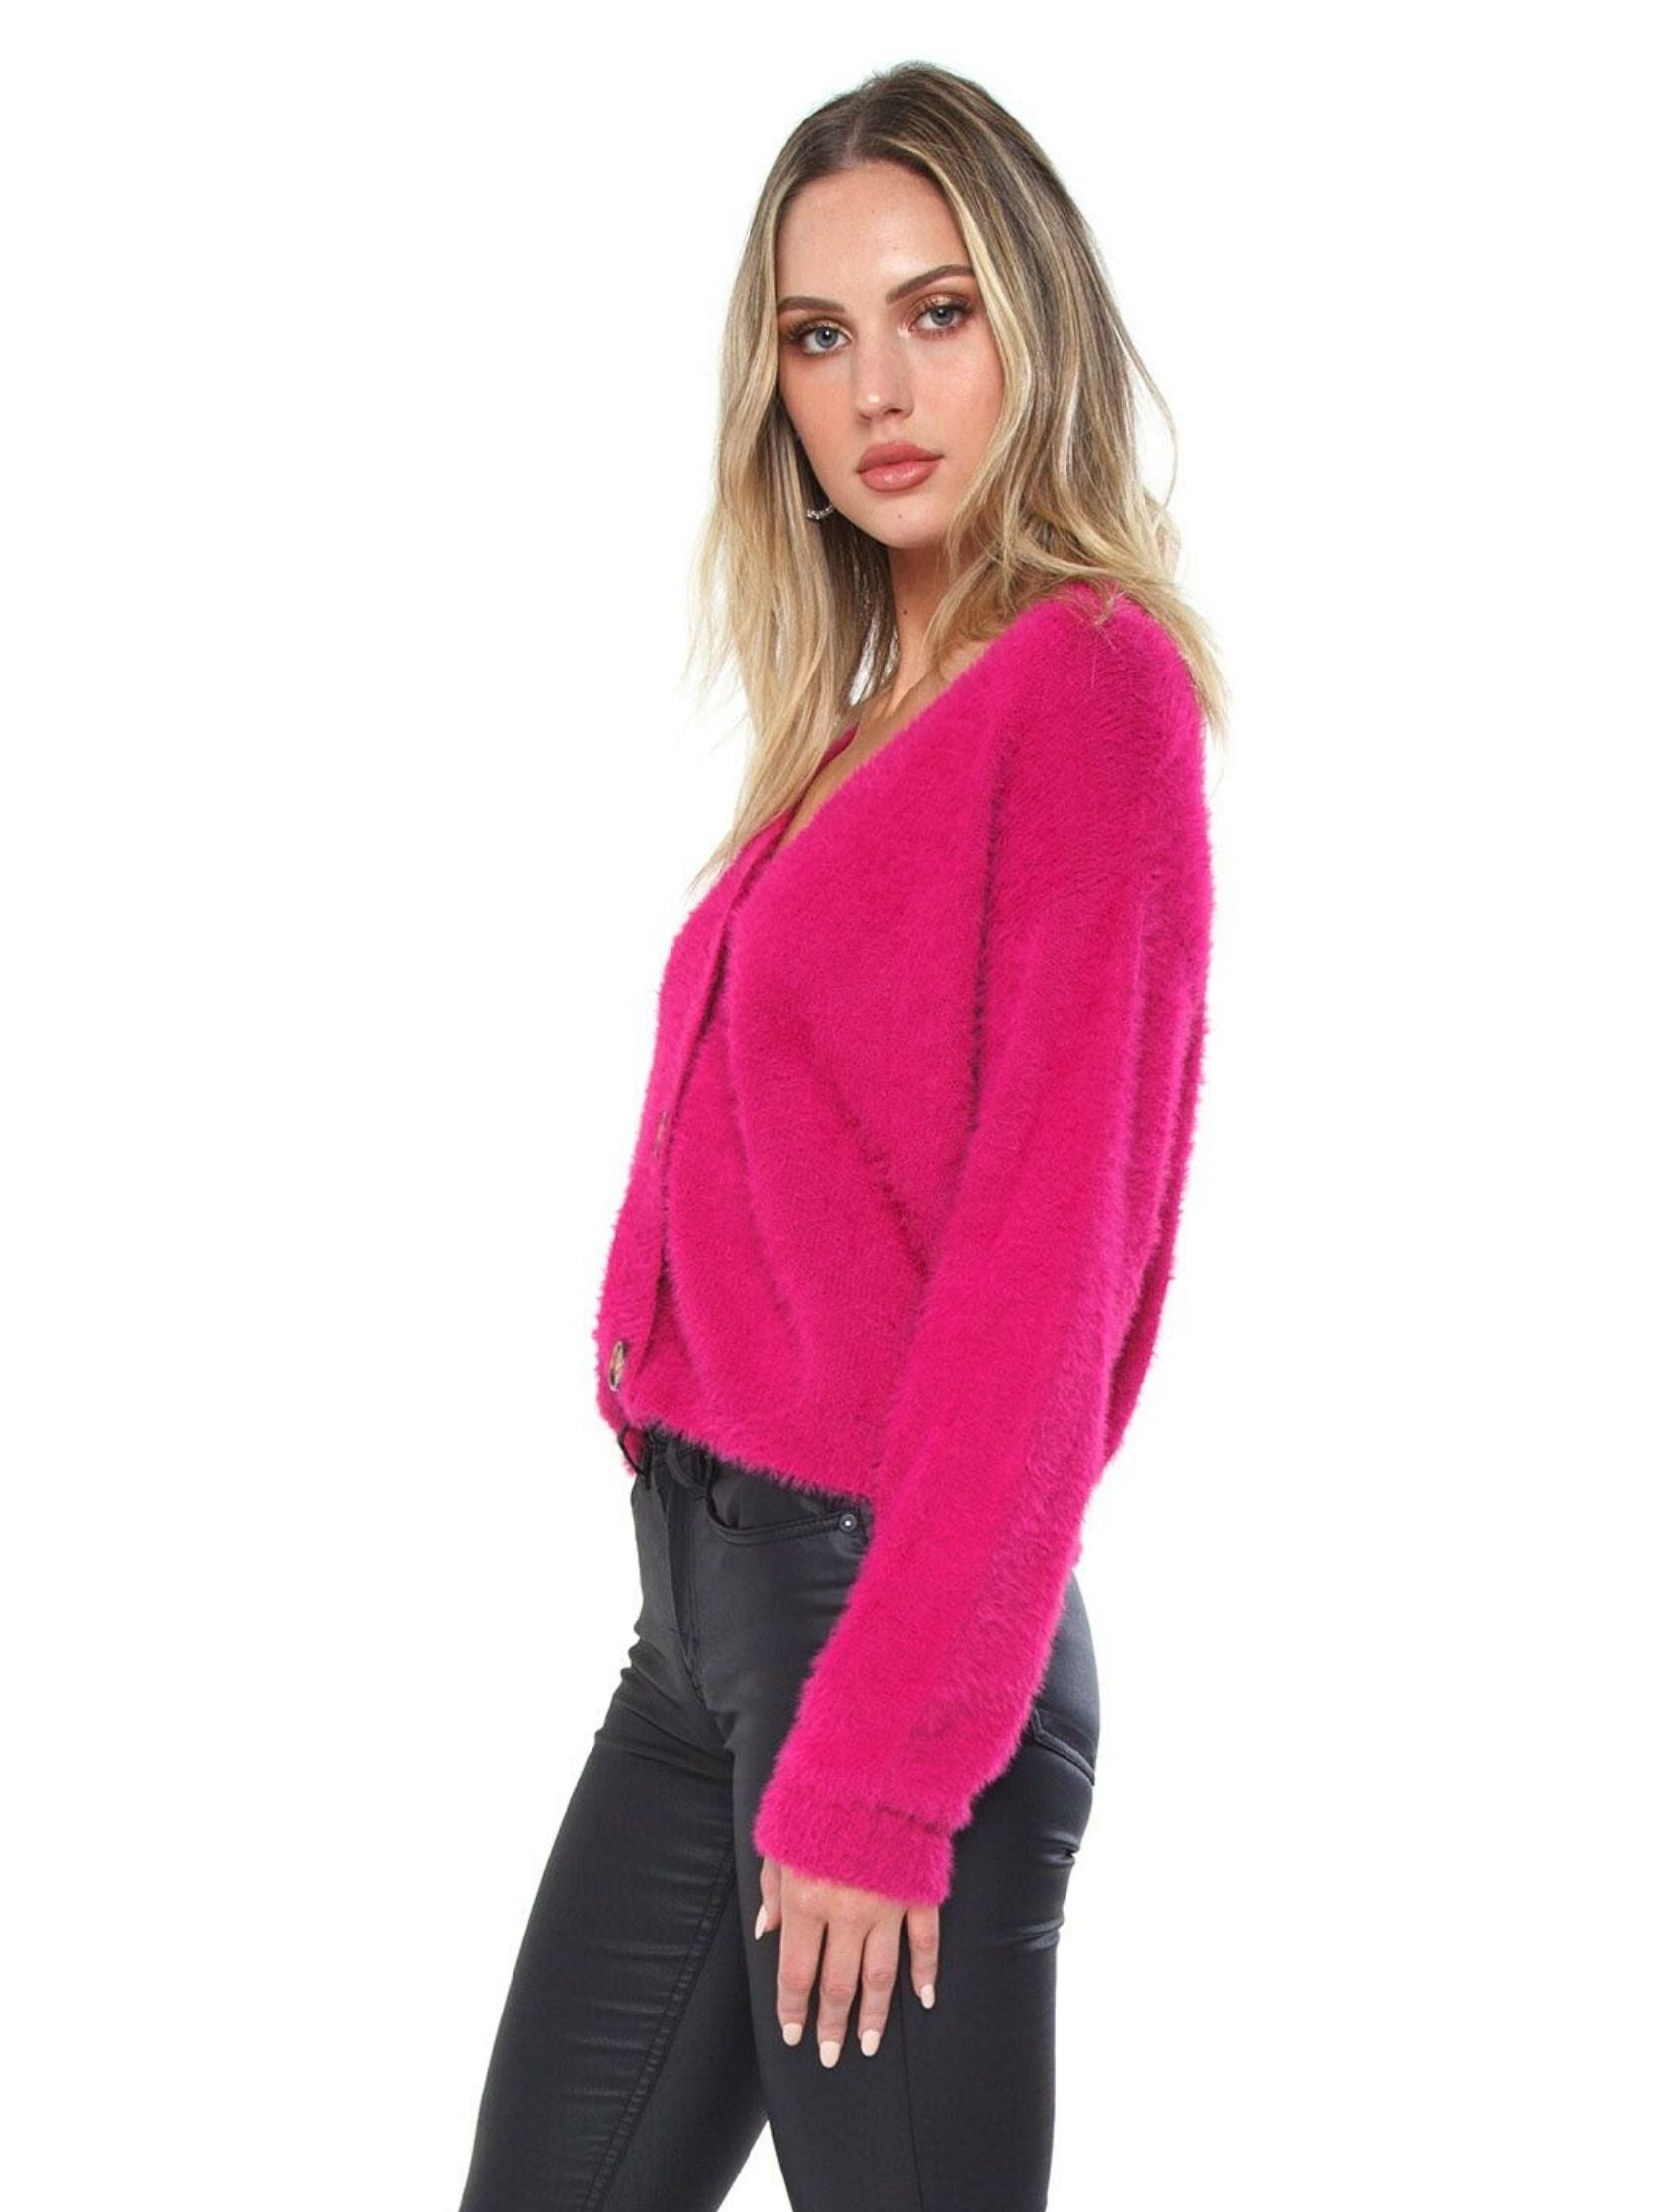 Women wearing a sweater rental from MINKPINK called Aurella Knit Cardigan